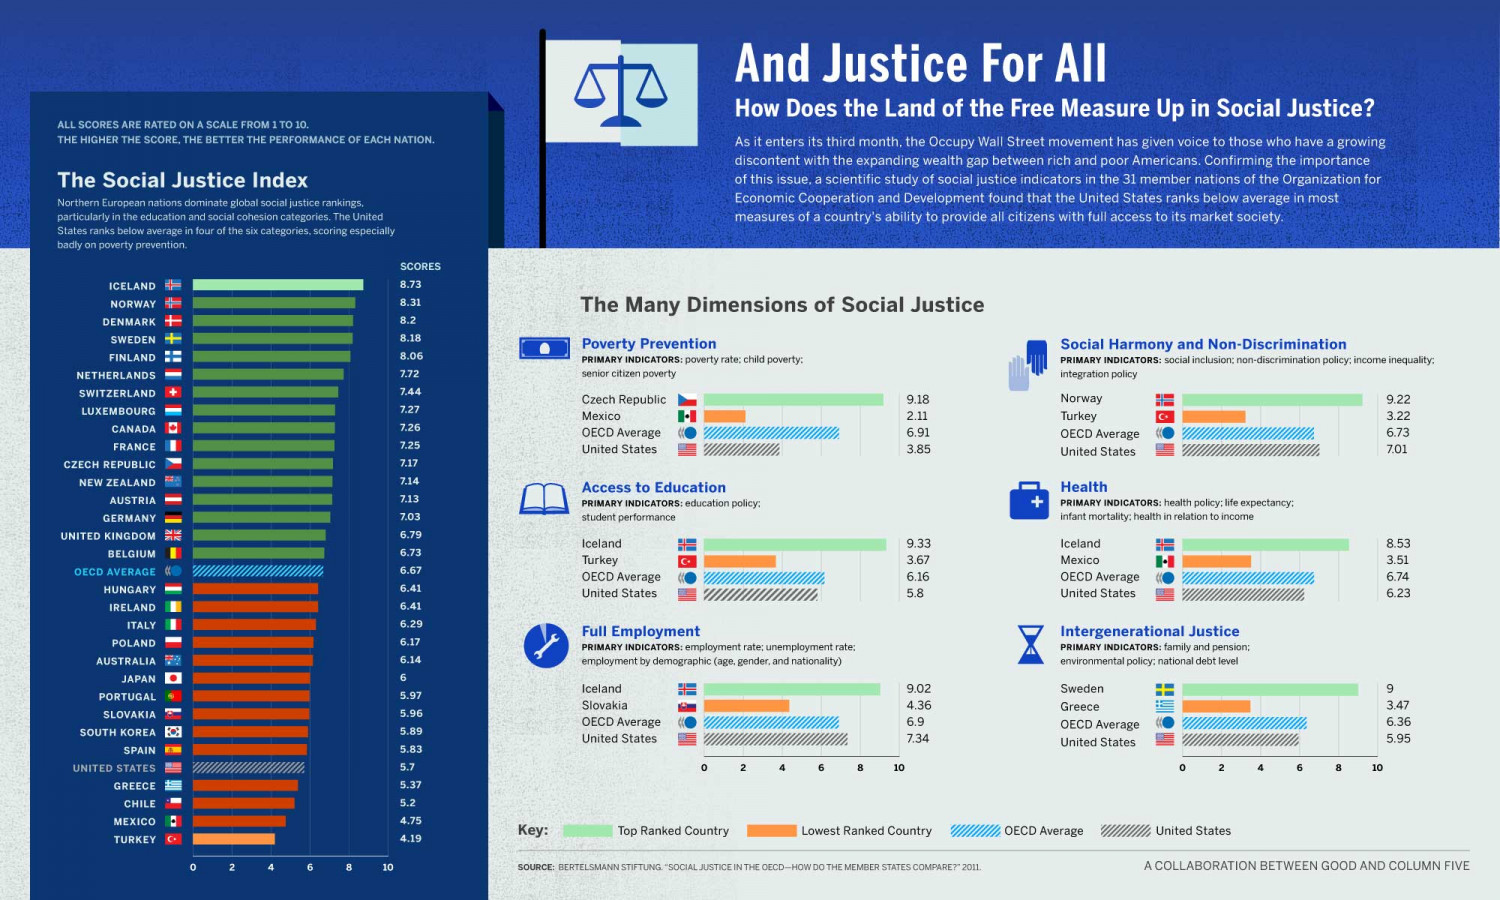 And Justice For All Infographic